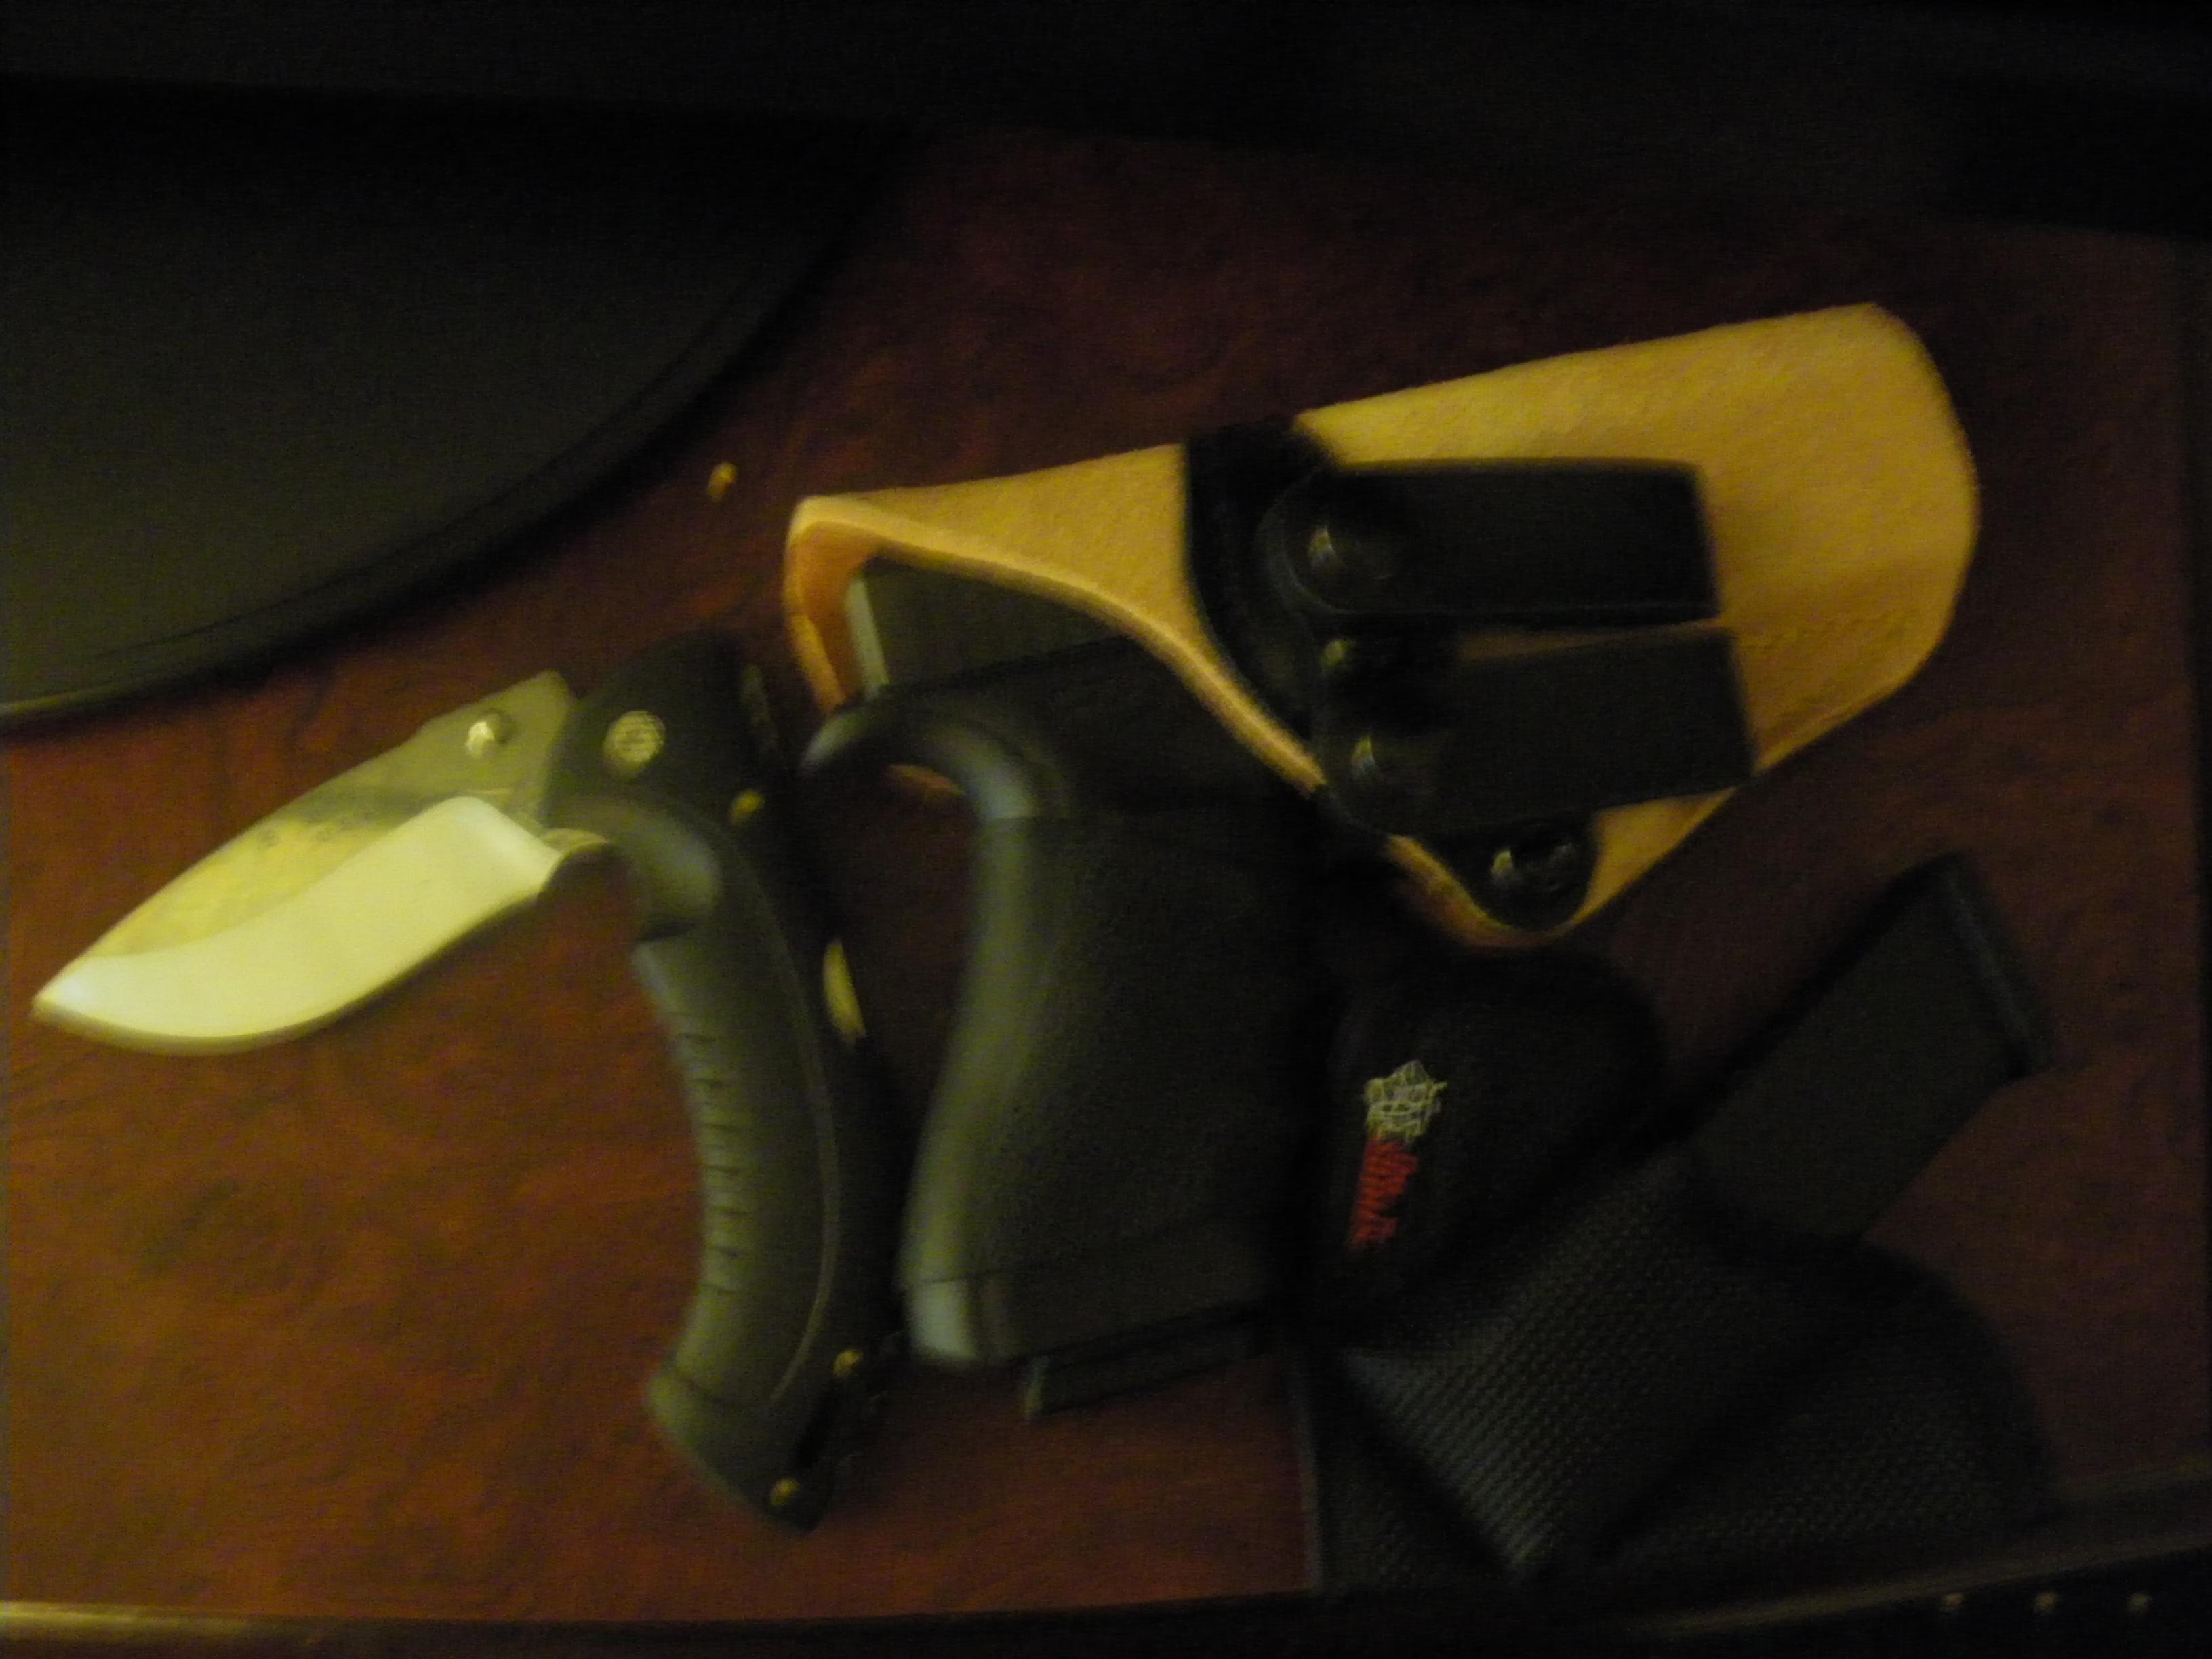 Newbie needs input on IWB Concealed Carry holsters and ranges.-2012-06-28-18.09.41.jpg